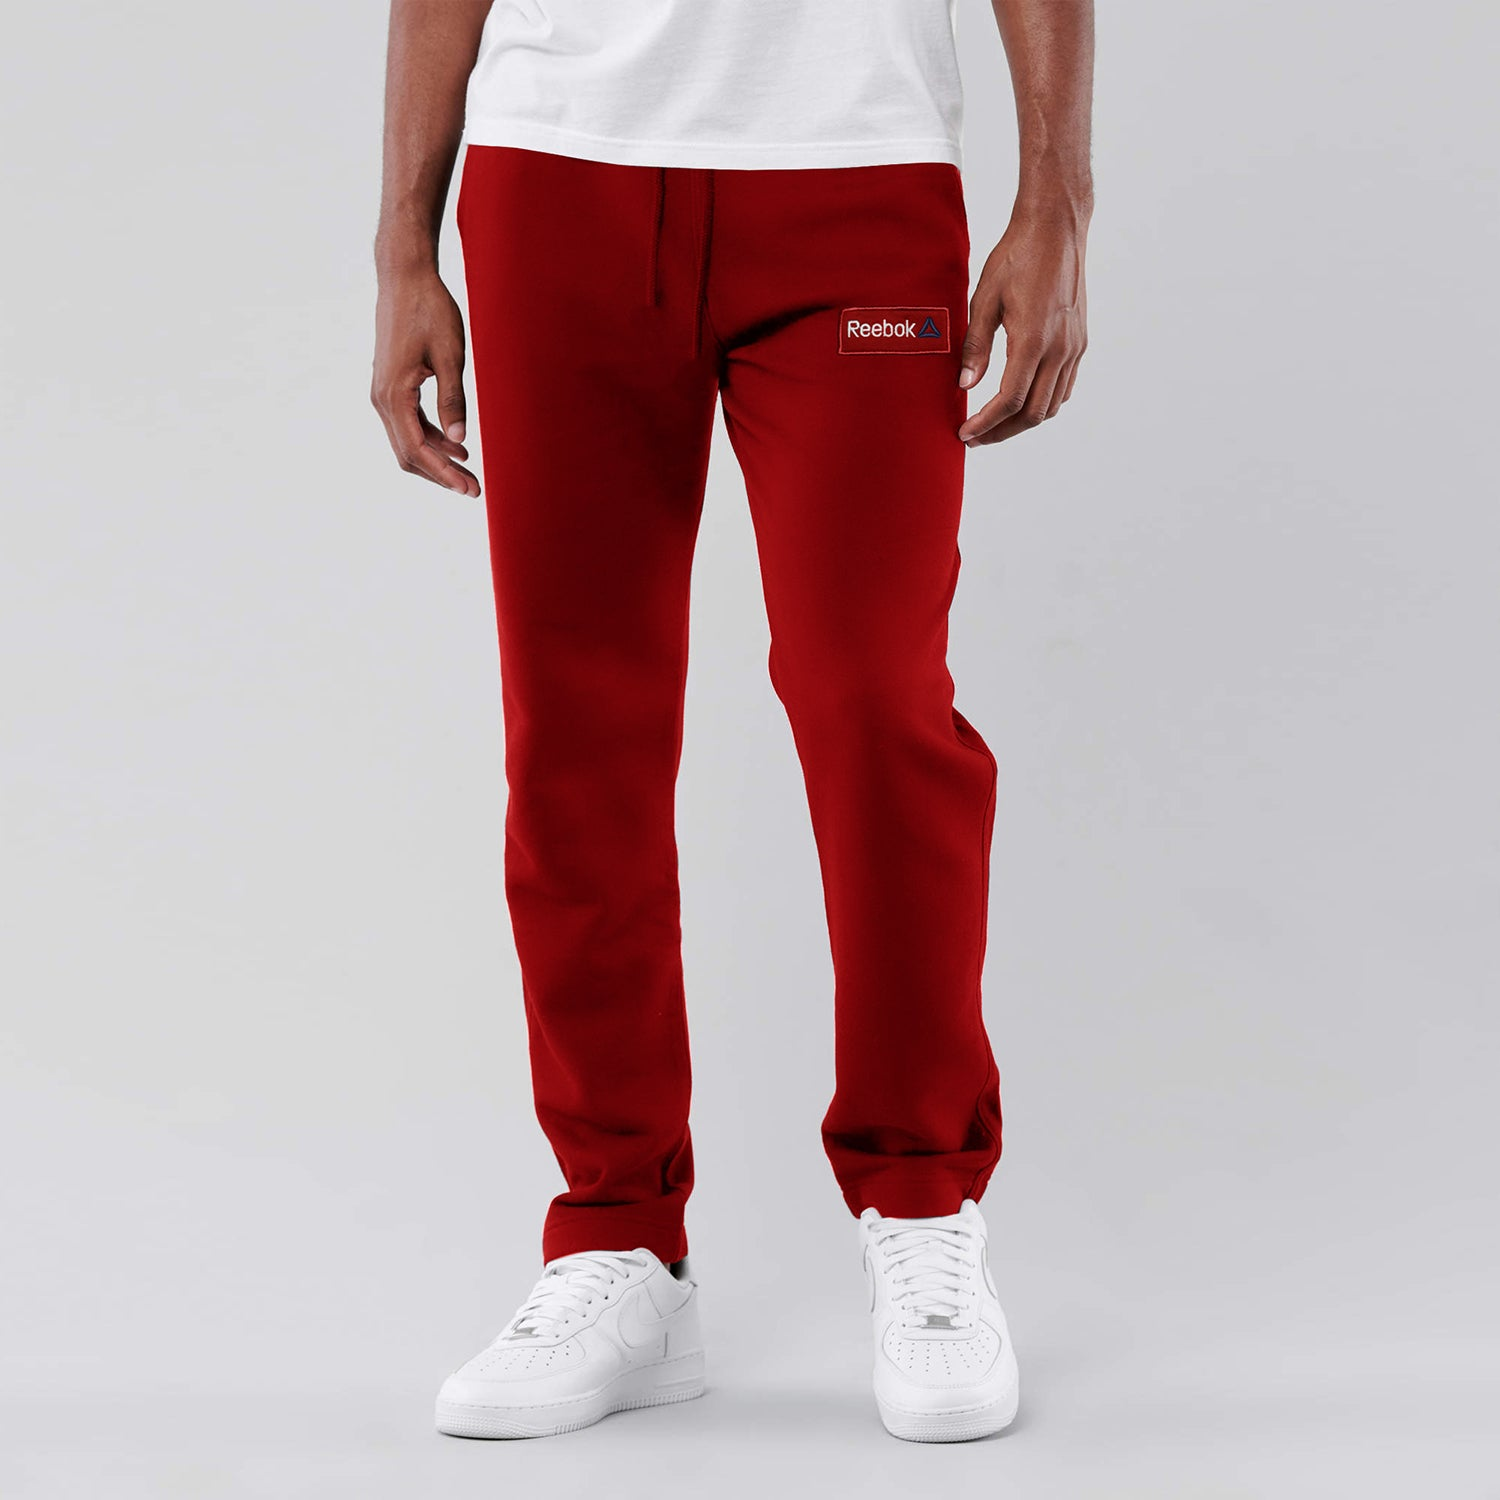 Reebok Heavy Fleece Regular Fit Trouser For Men-Red With White Embroidery-NA12567